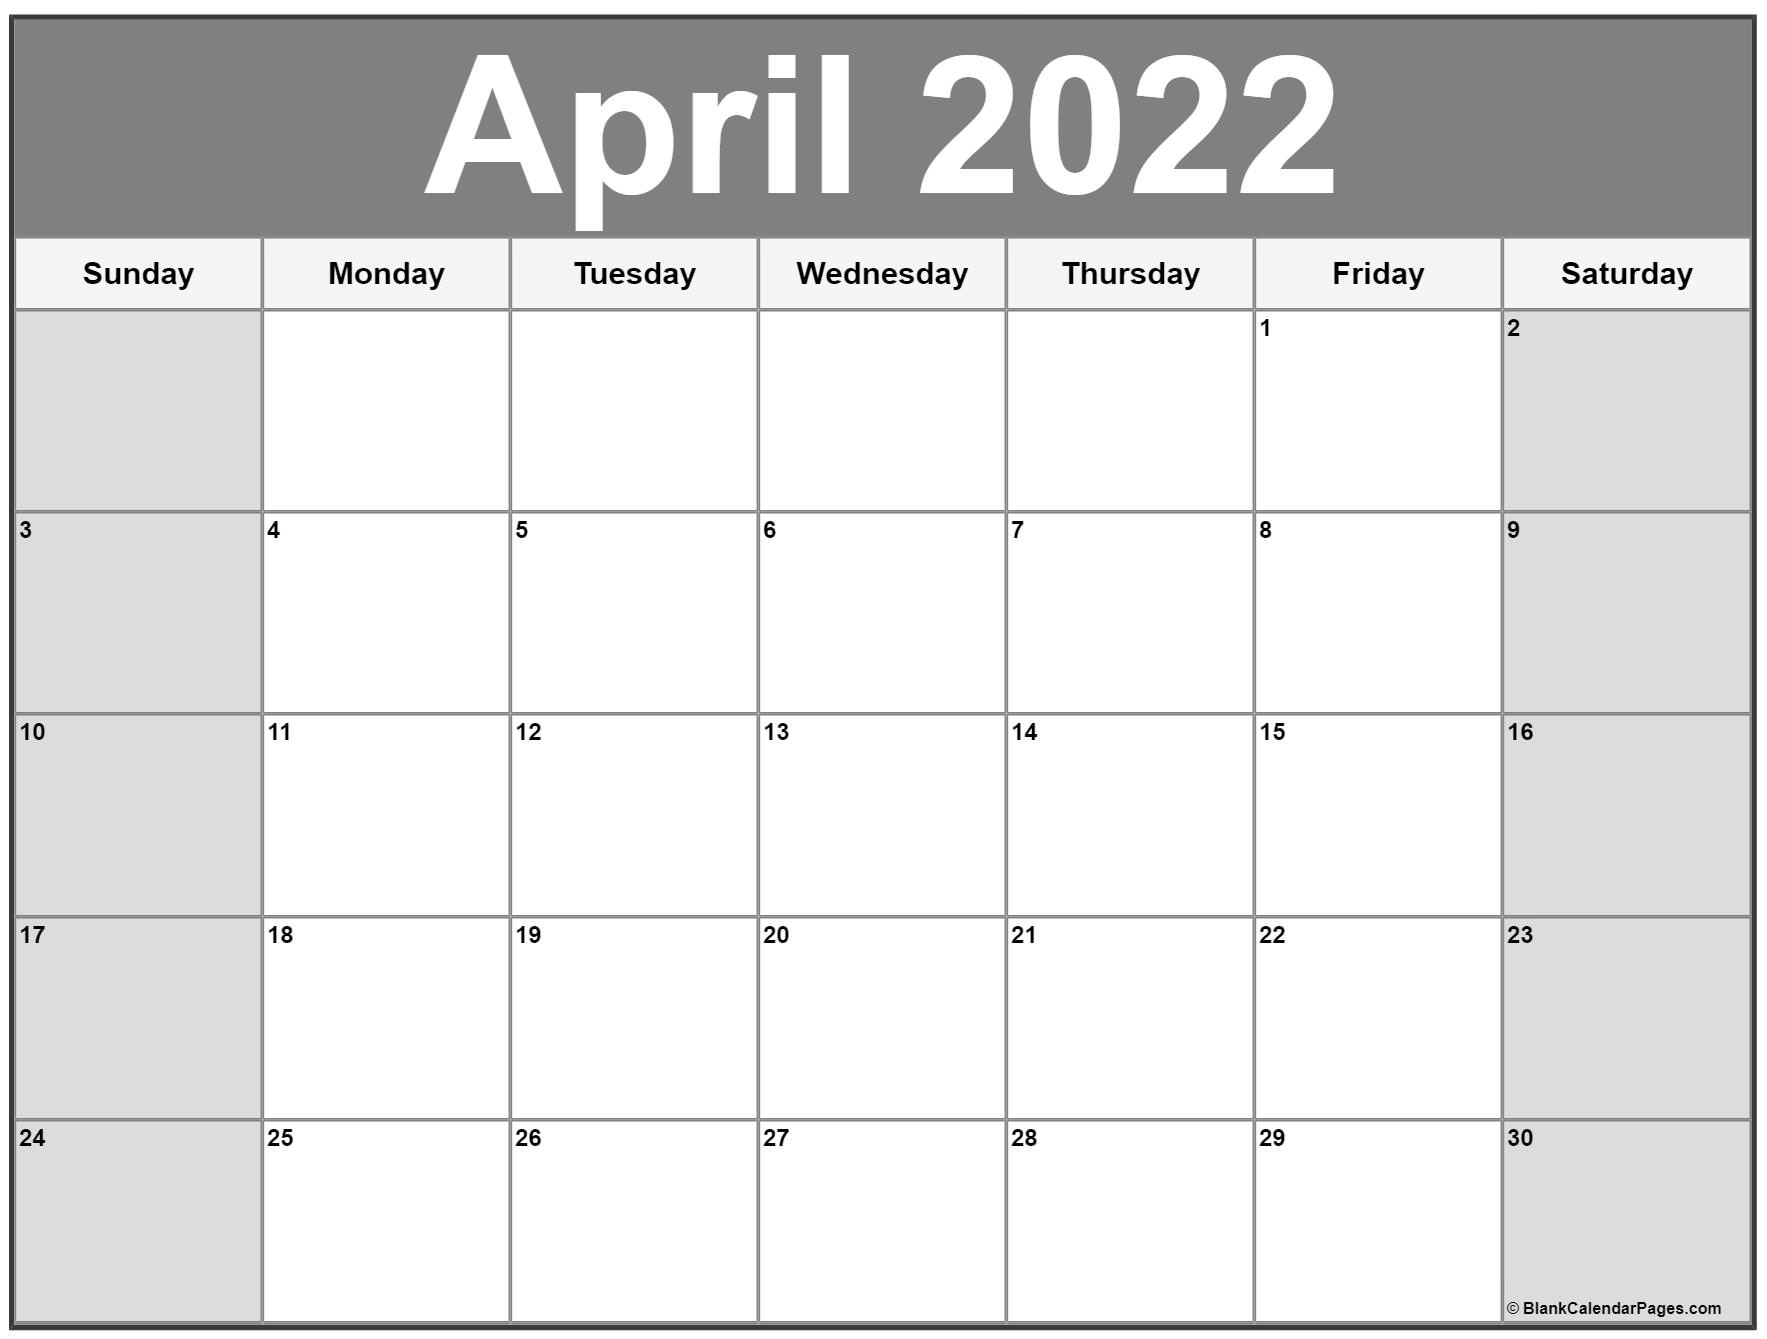 Time rules our lives, with appointments and deadlines guiding us through our days. April 2022 calendar   free printable calendar templates